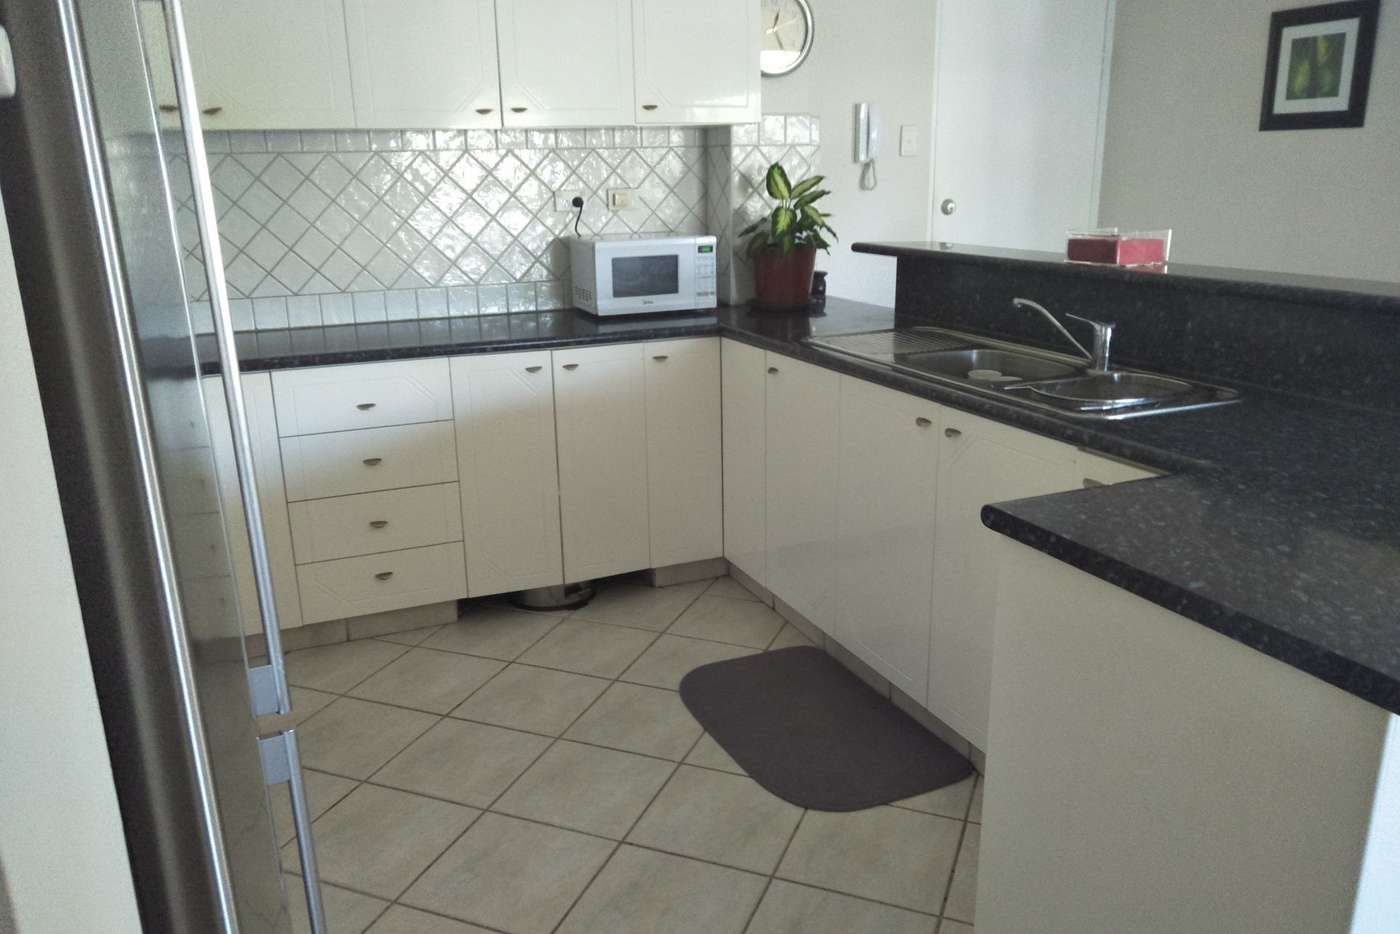 Seventh view of Homely apartment listing, 5/126 Mitchell St, Larrakeyah NT 820